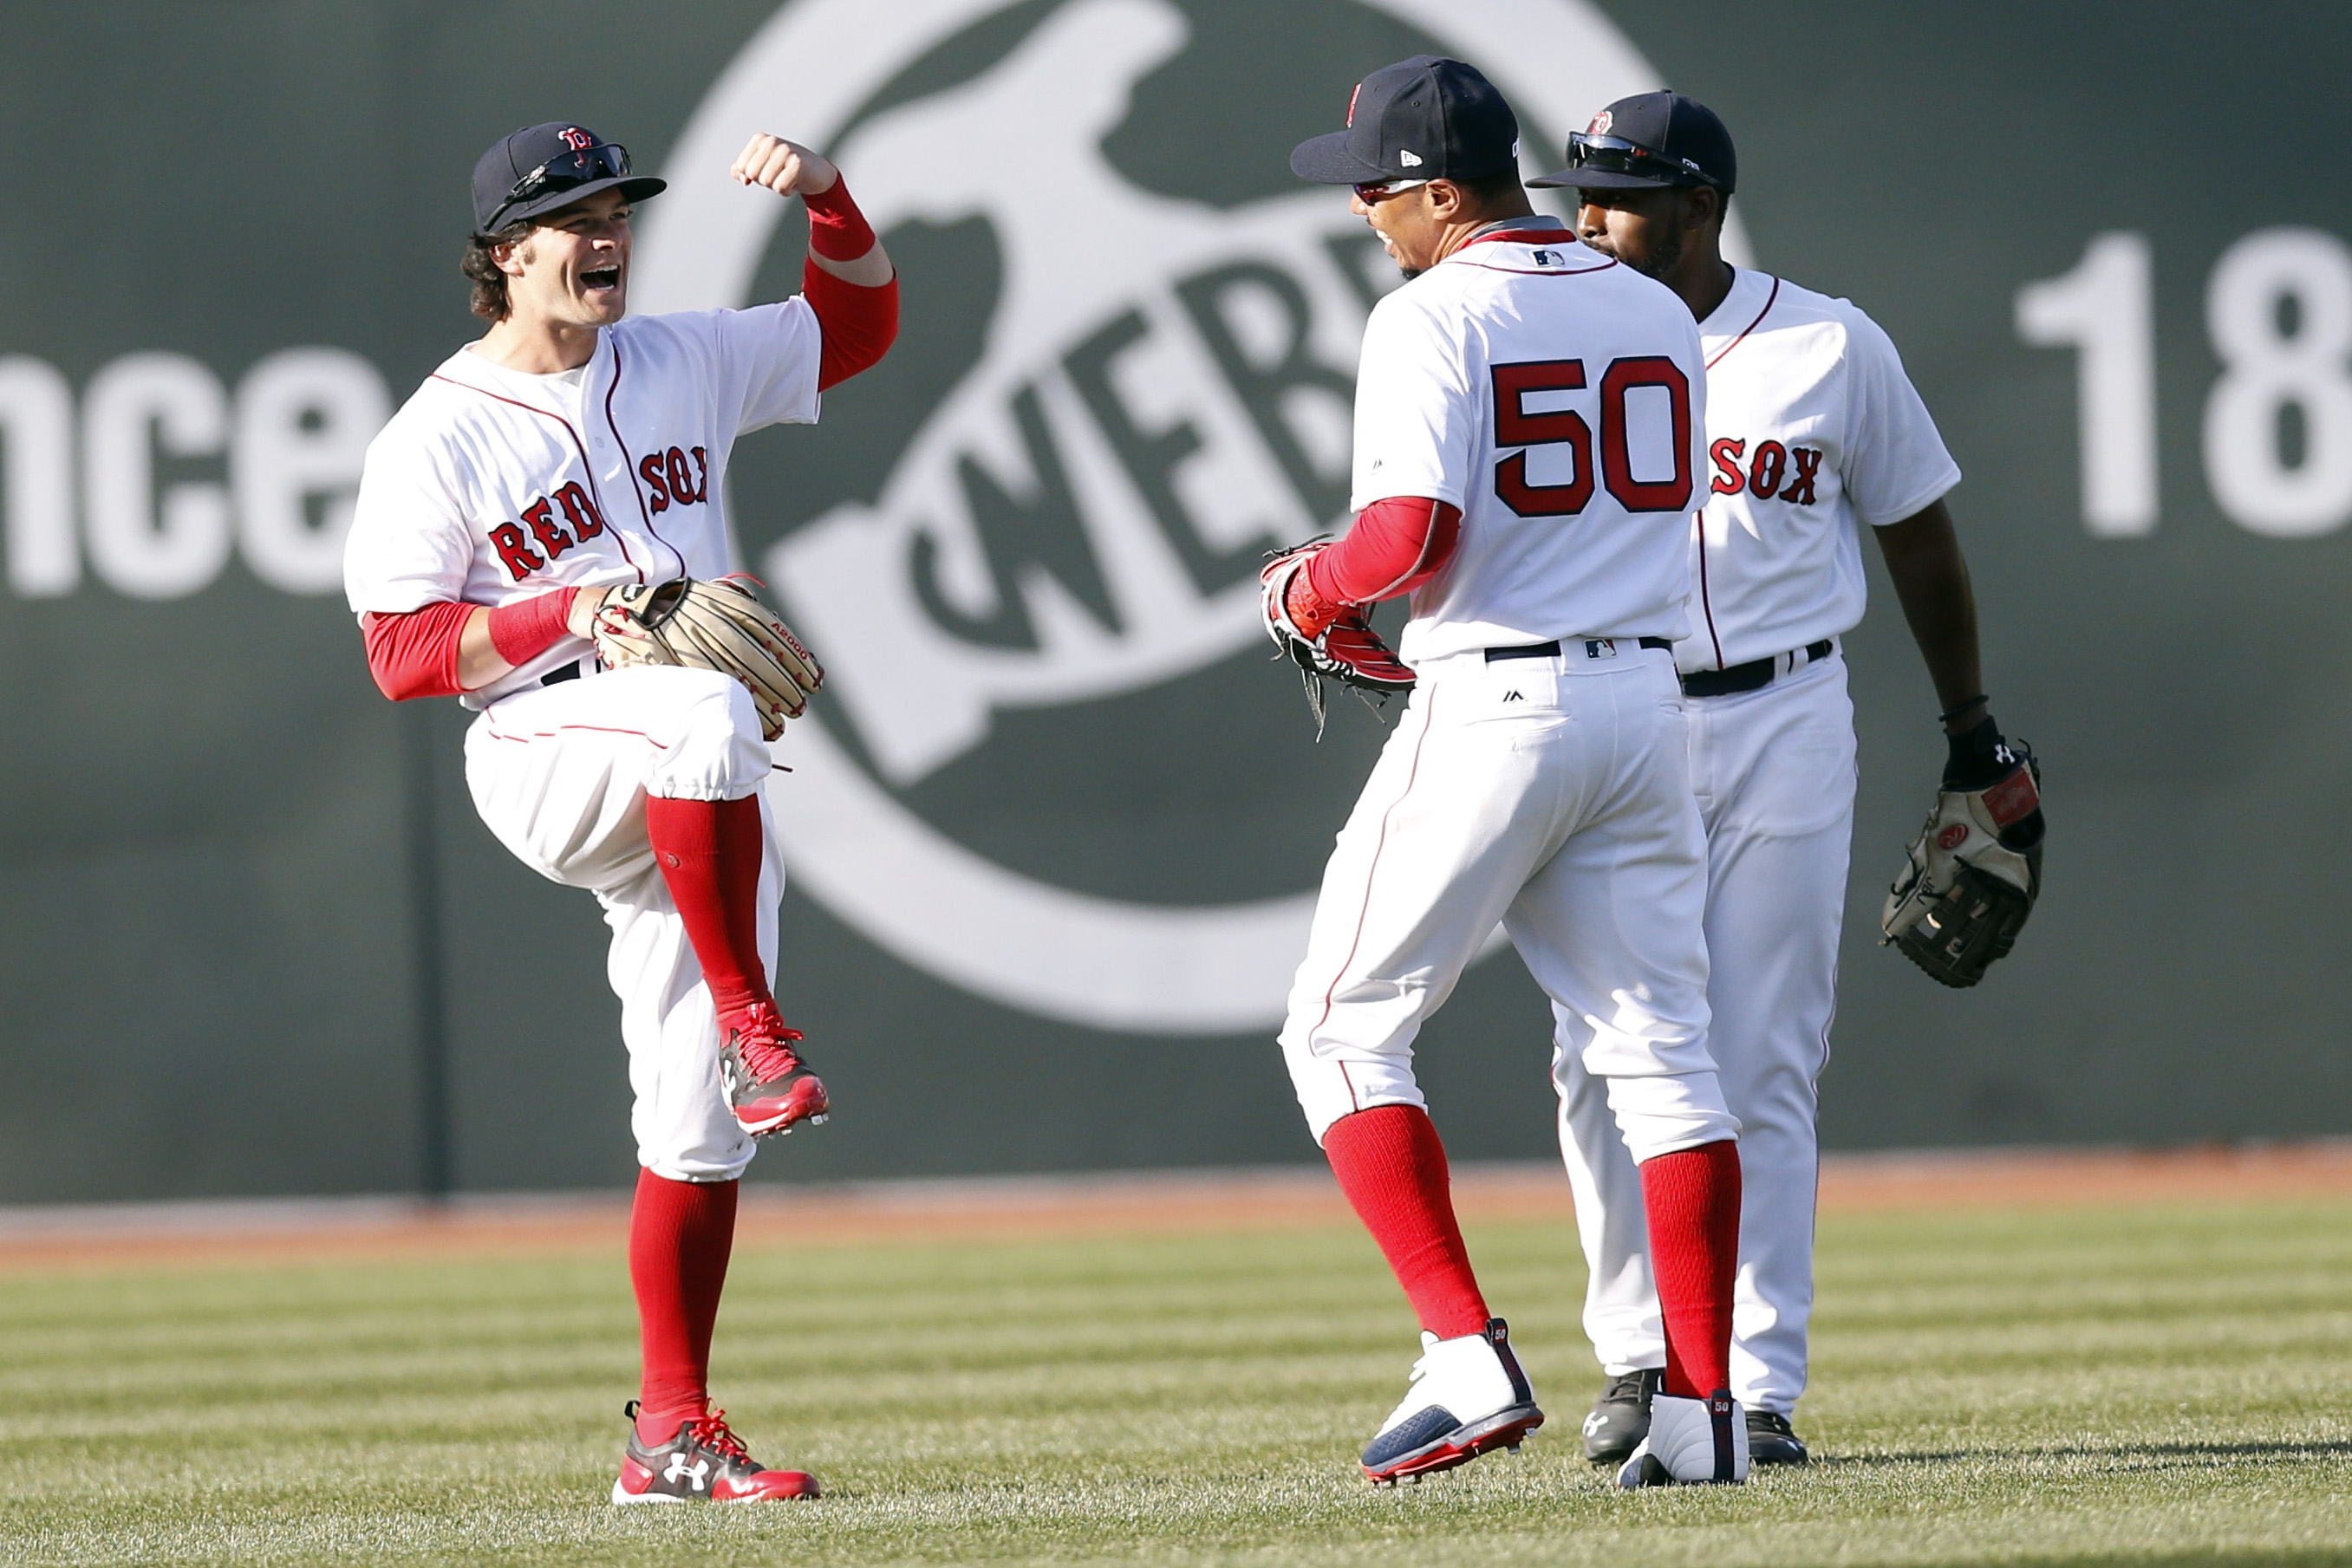 cheaper 5f77d 6a1a2 Boston Red Sox: Scenes and Top Plays From 2017 Opening Day